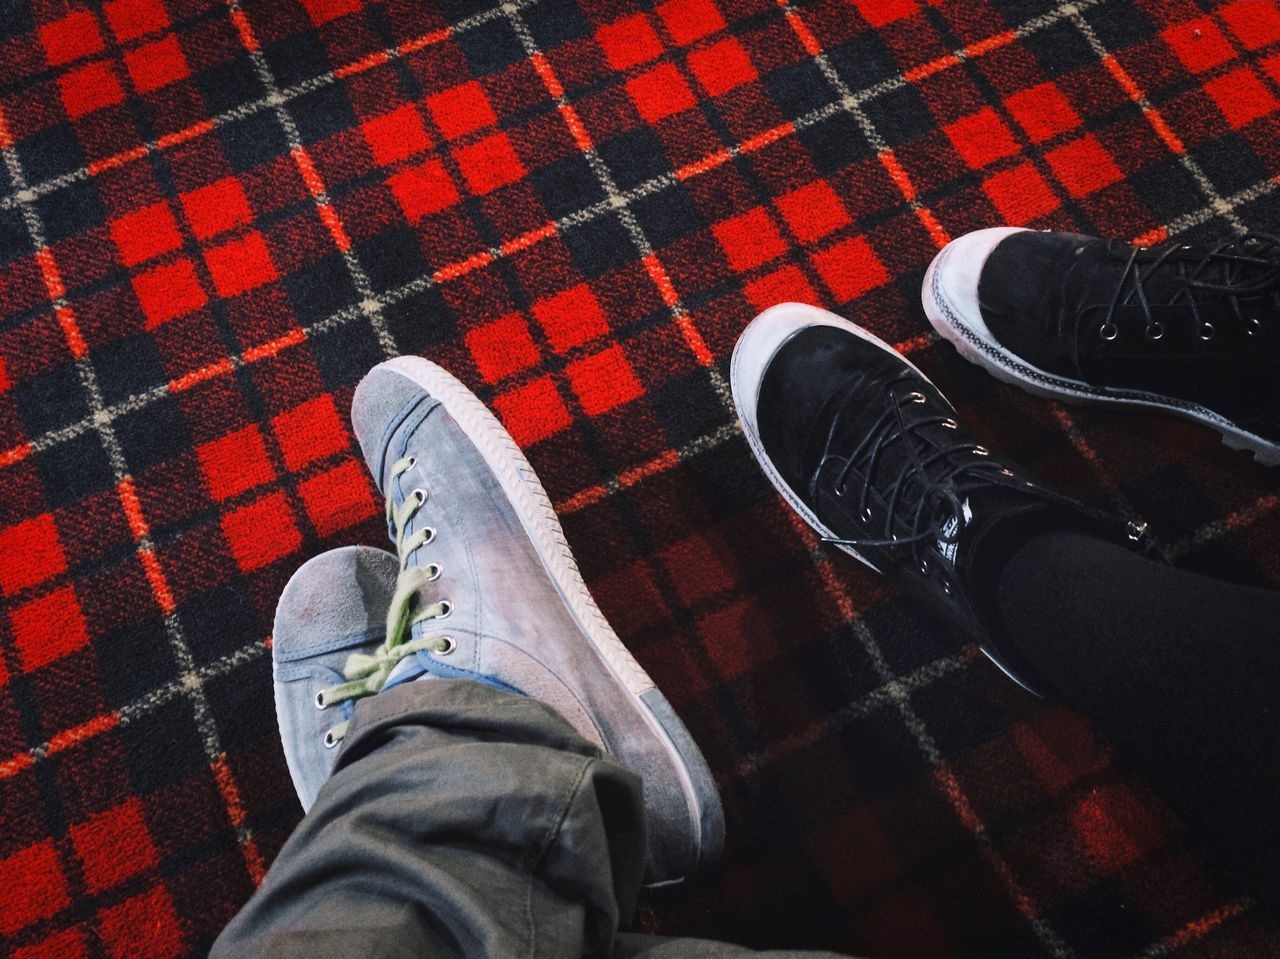 Personal perspective on our sneakers Shoes Sneakers Tennis Shoes Personal Perspective Perspective View From Above Carpet Red And Black Black And White Legs Sitting Two People Chilling Close-up Backgrounds Lumberjack Pattern Square Pattern Sneaker Shoes Fashion Style